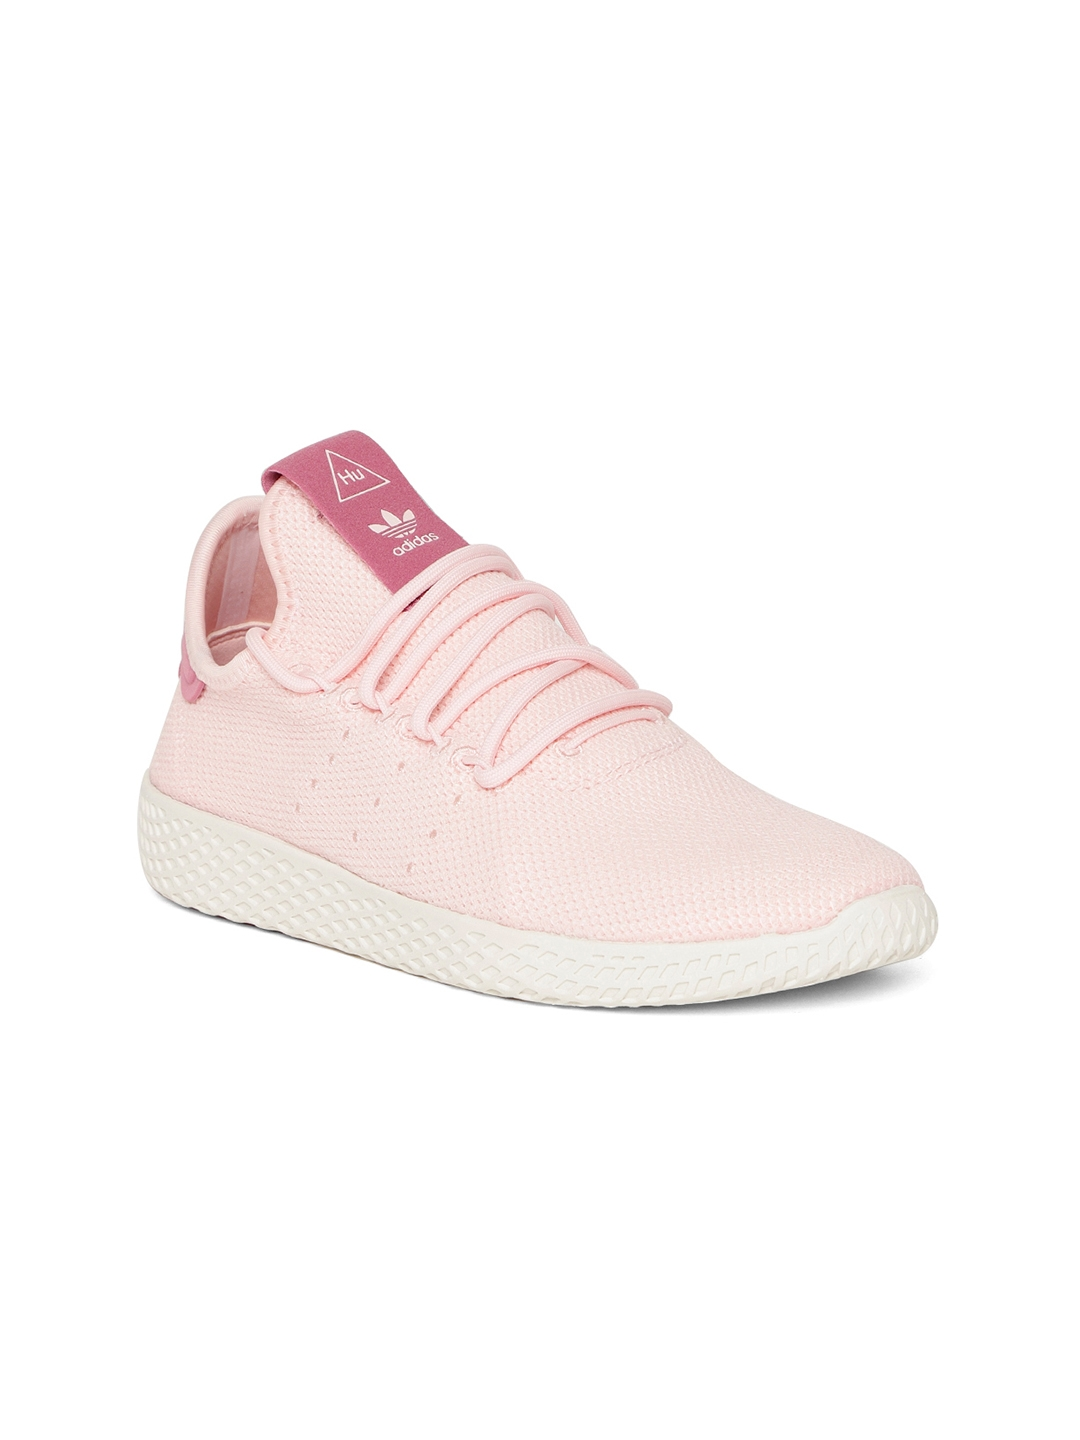 b8c4f42b9 Buy ADIDAS Originals Women Pink Pharrell Williams Tennis HU Sneakers ...